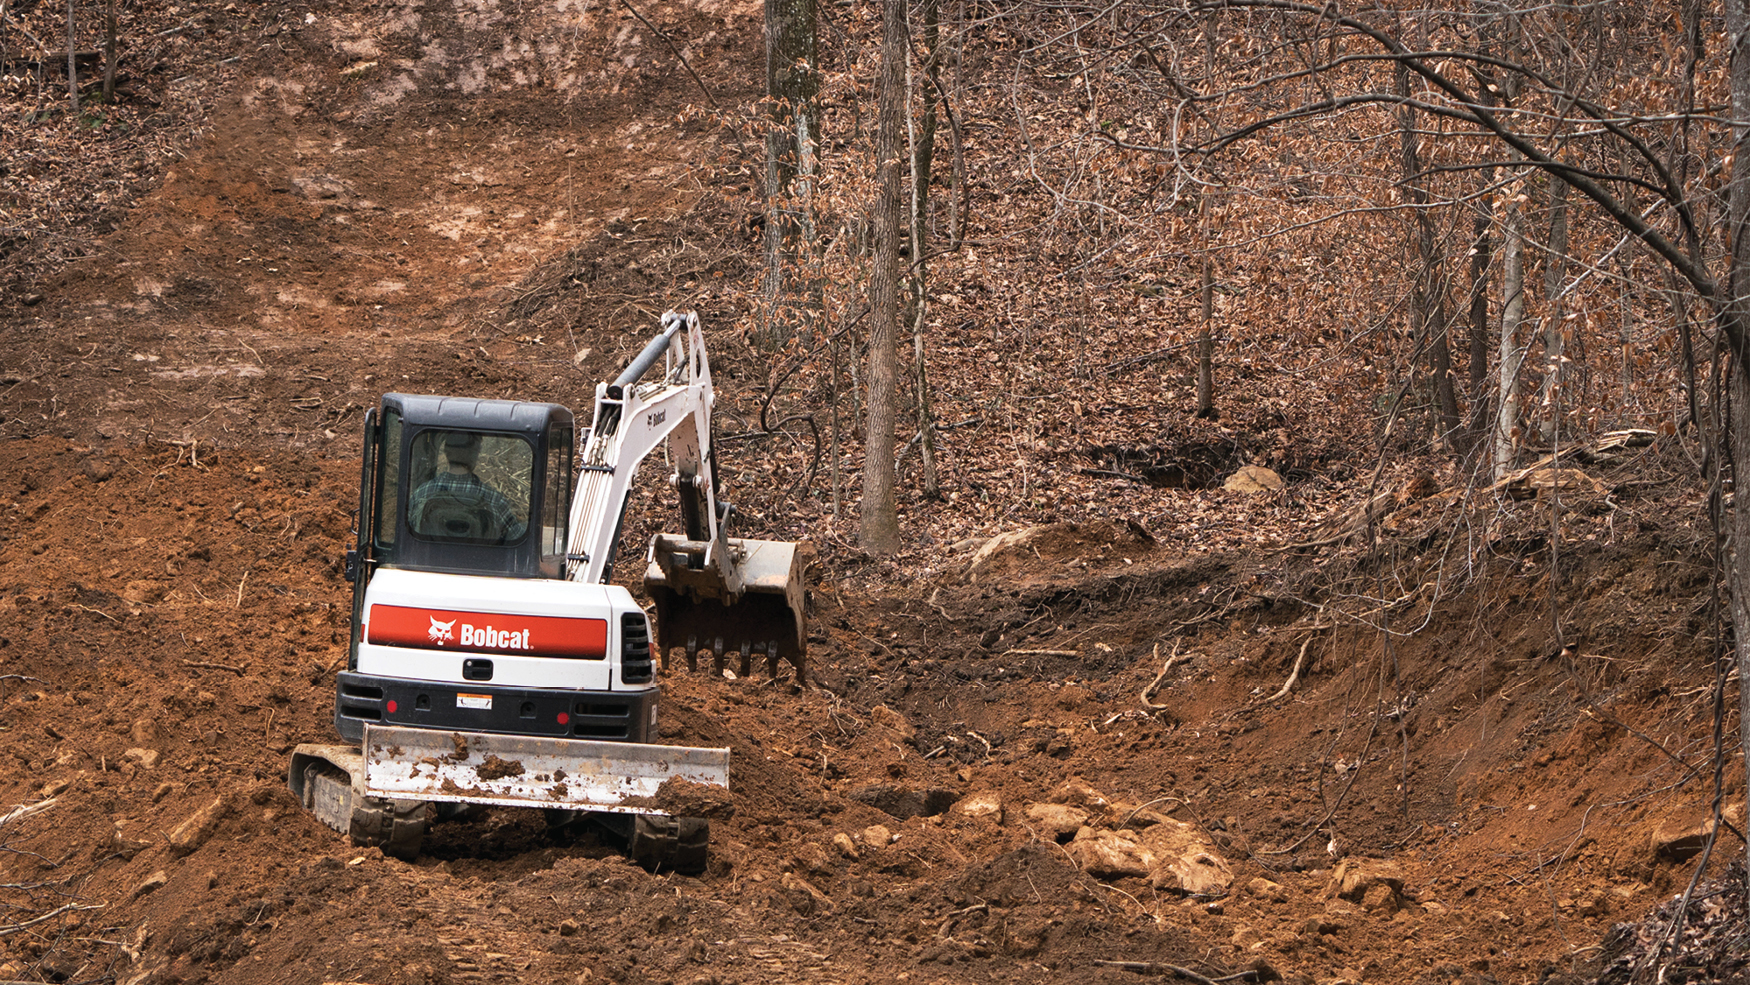 Mountain Bike Racers Build Downhill Course with Bobcat